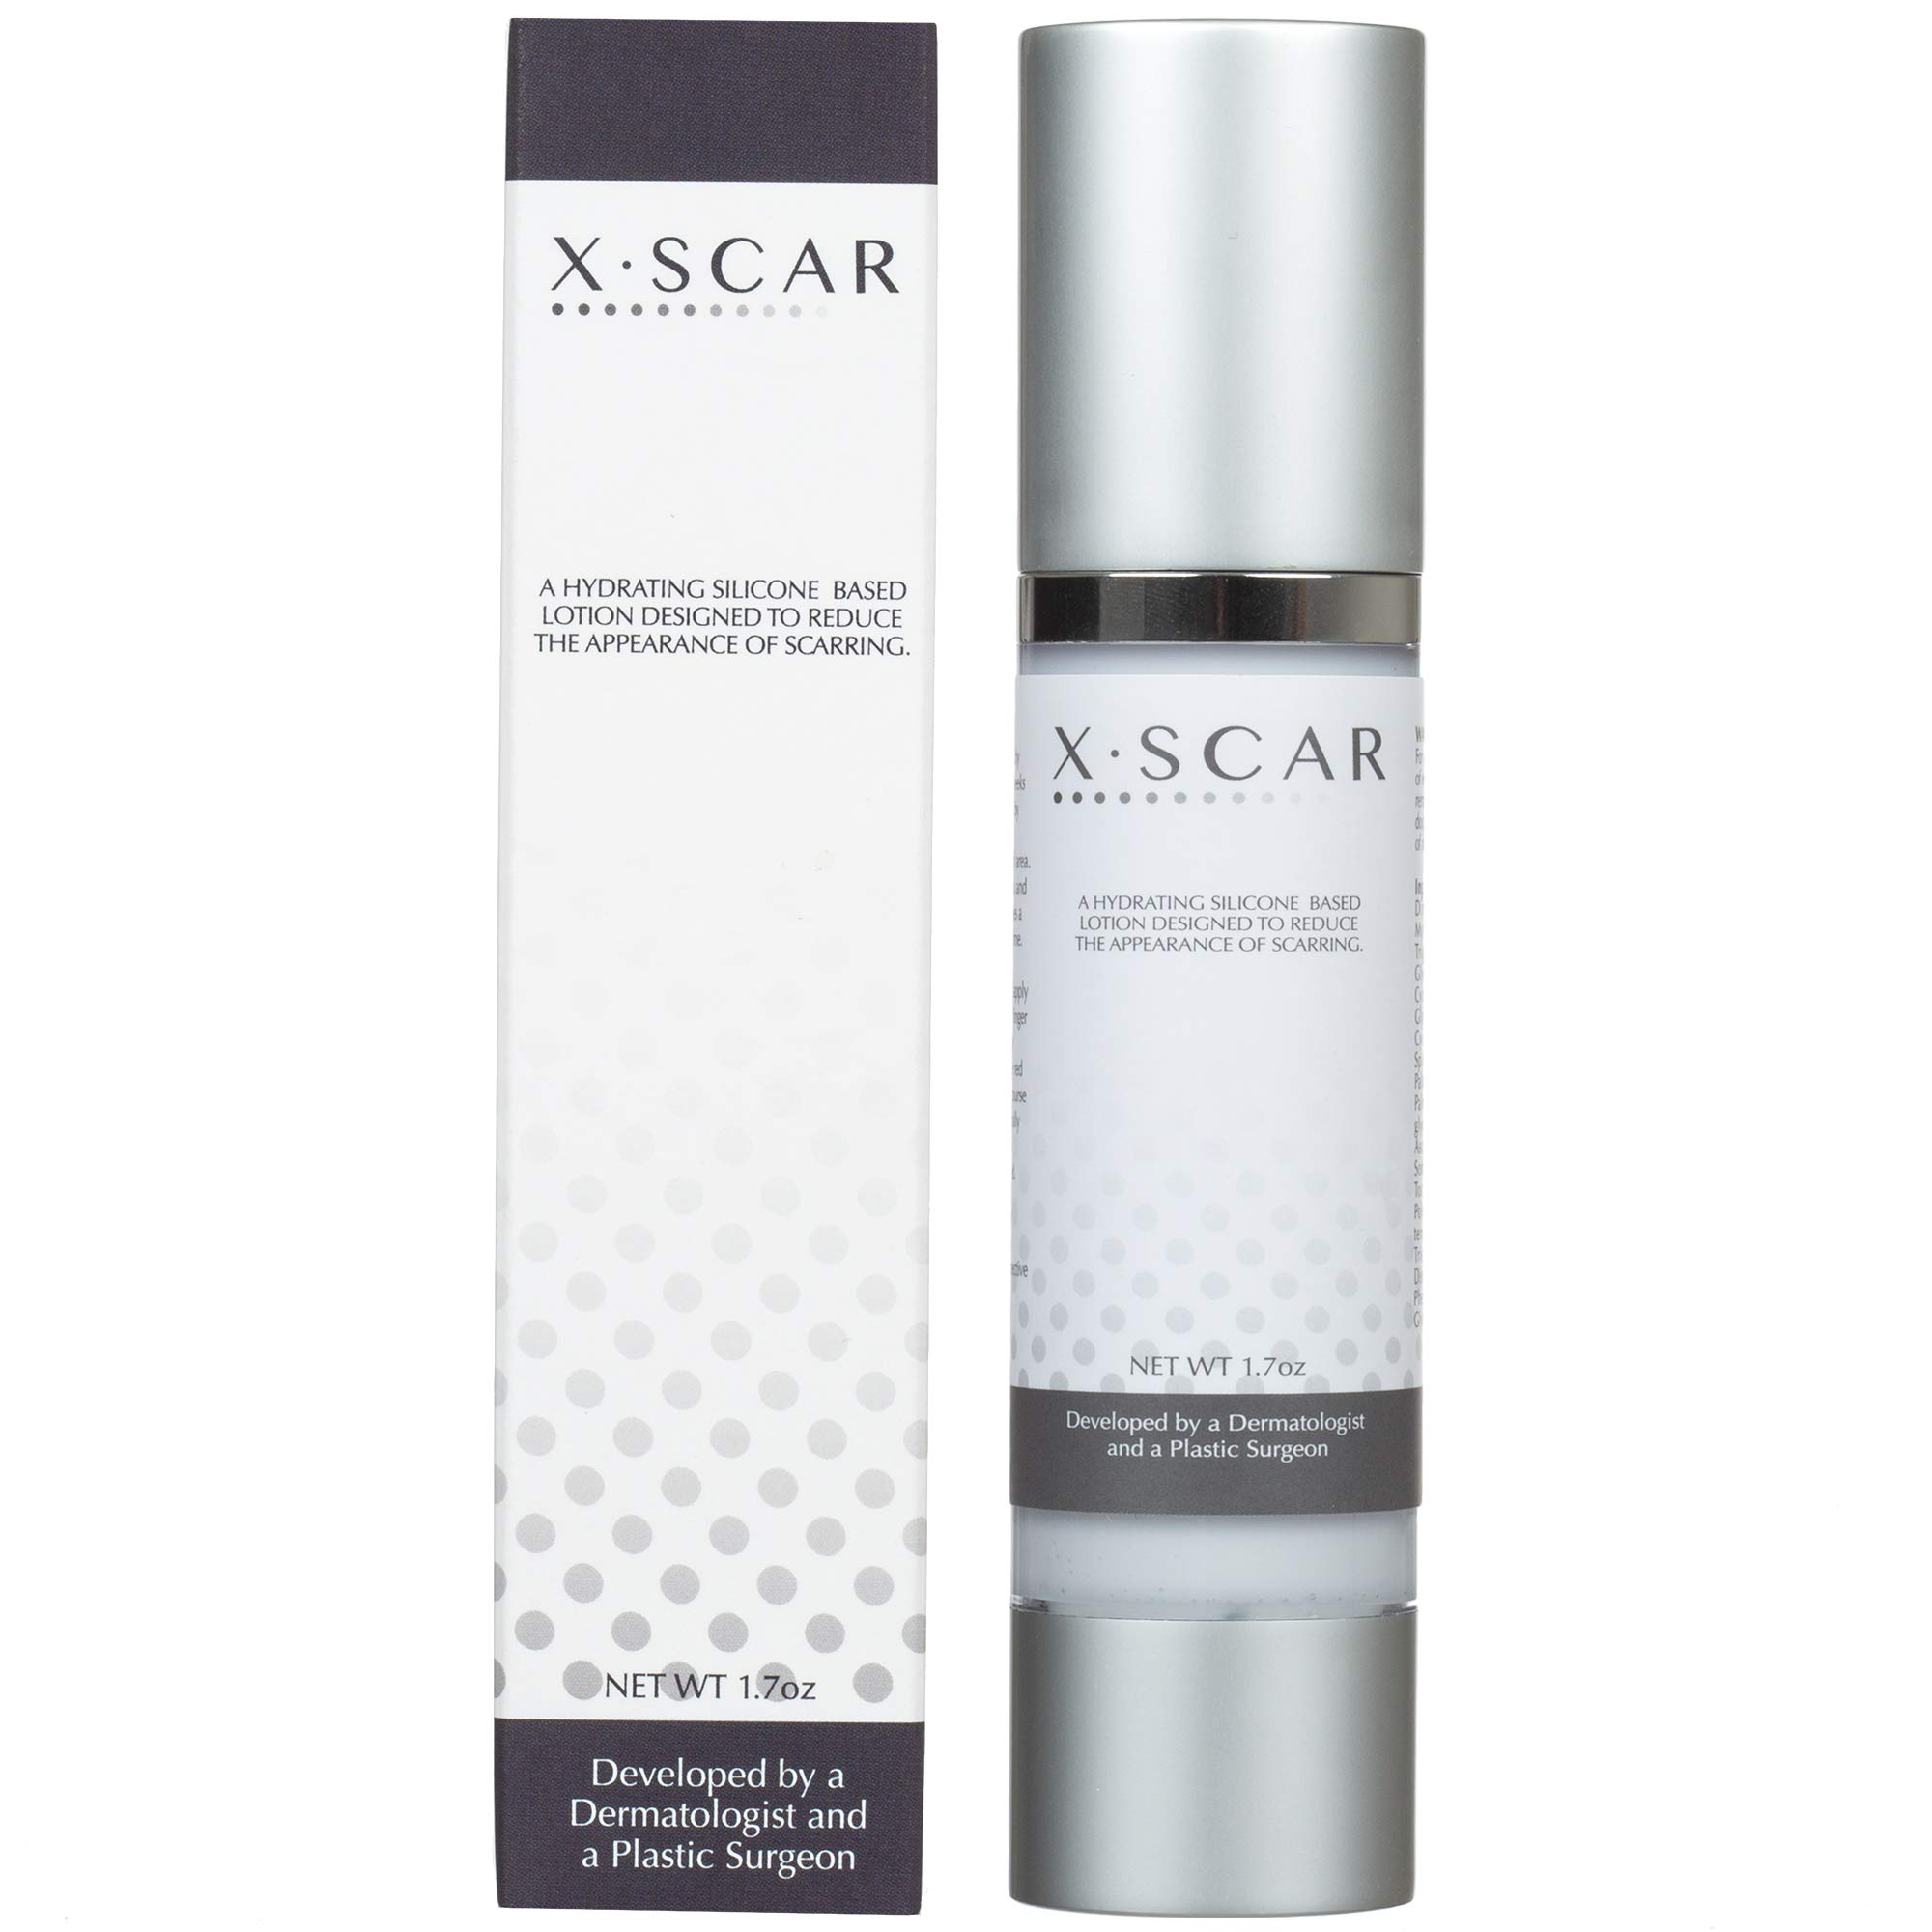 XScar Silicone Scar Treatment with Vitamin E | Developed by a Dermatologist and a Plastic Surgeon | Safe to use on all ages by XSCAR